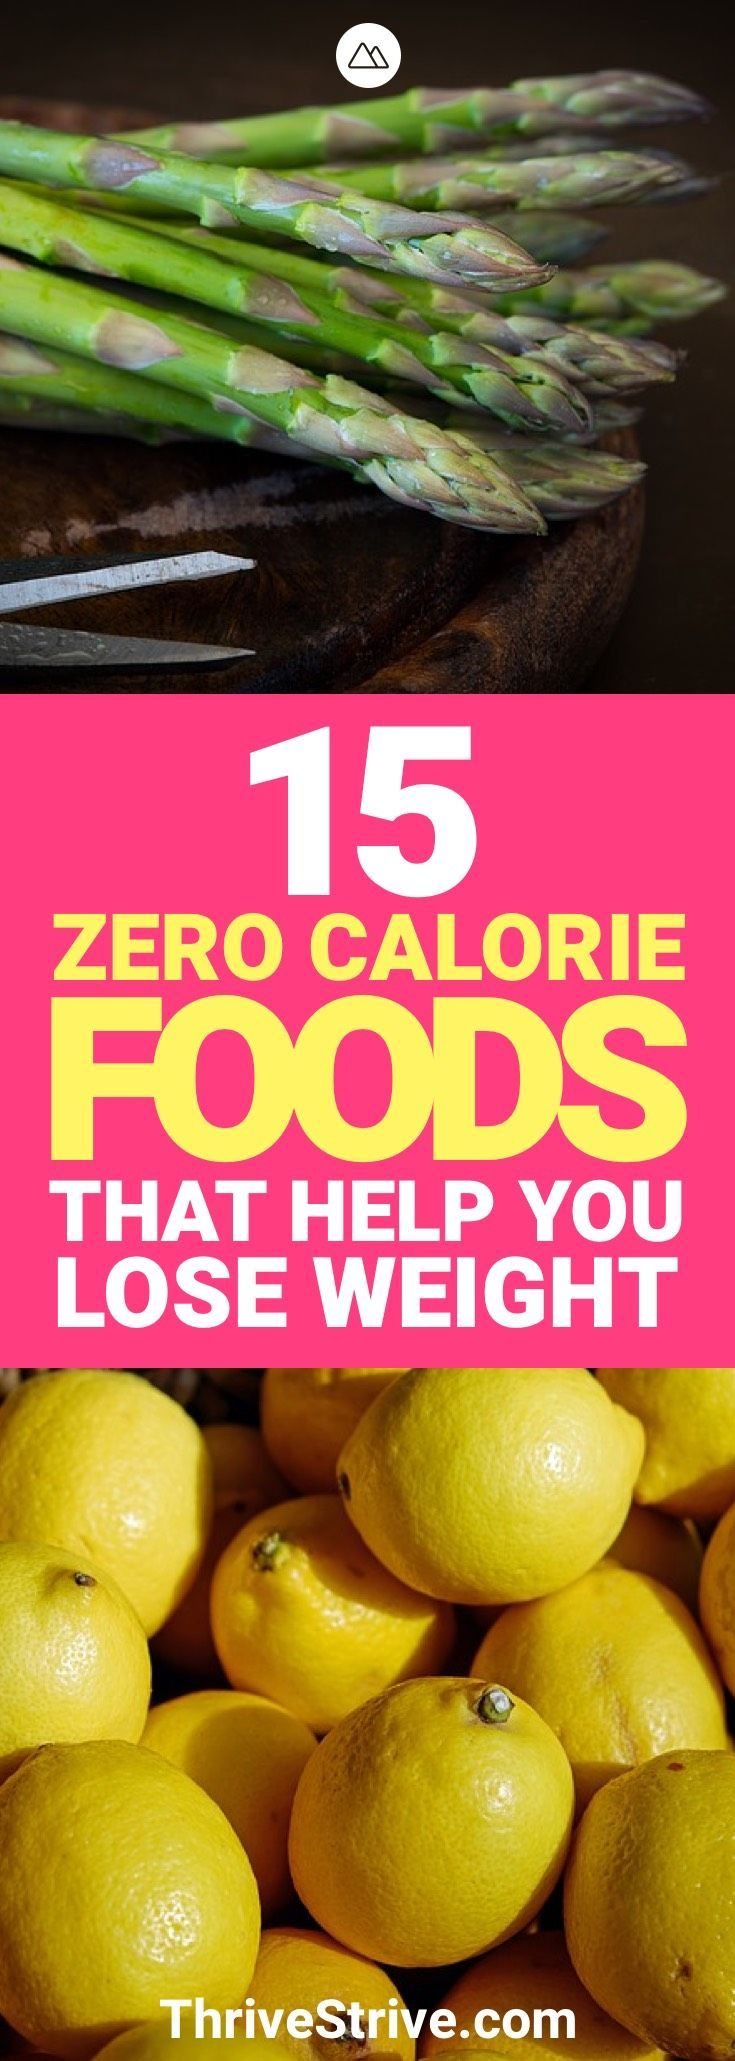 Looking to lose weight? These zero-calorie foods will help you burn more calories than you consume and taste delicious when prepared properly. Lose weight quickly by eating! #Diettips